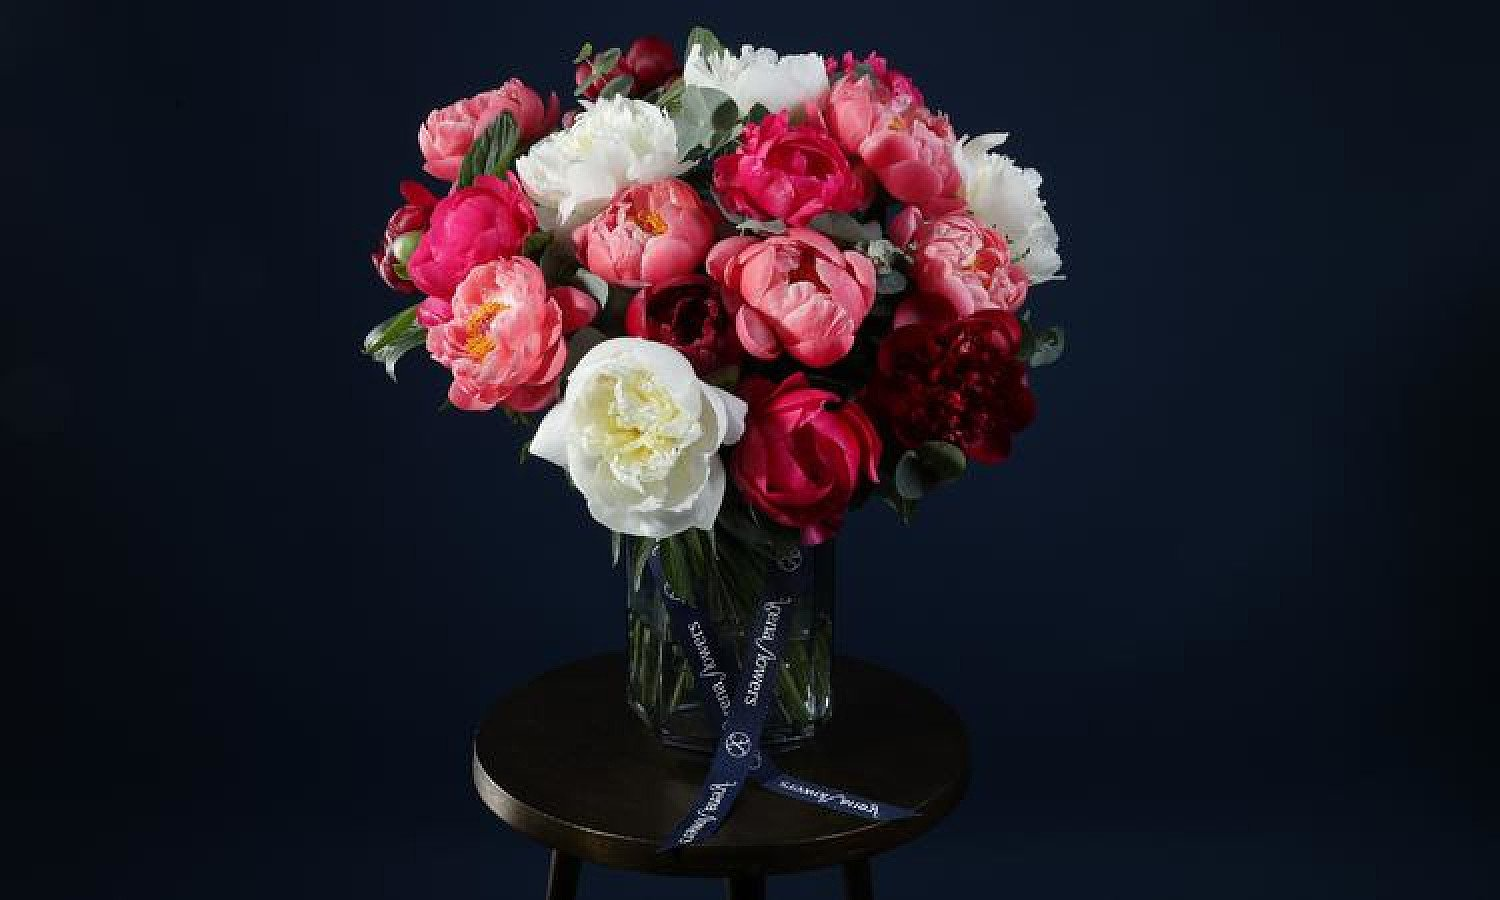 Mother's Day Gift Ideas - The gift of flowers with a beautiful 3-month floral subscription!